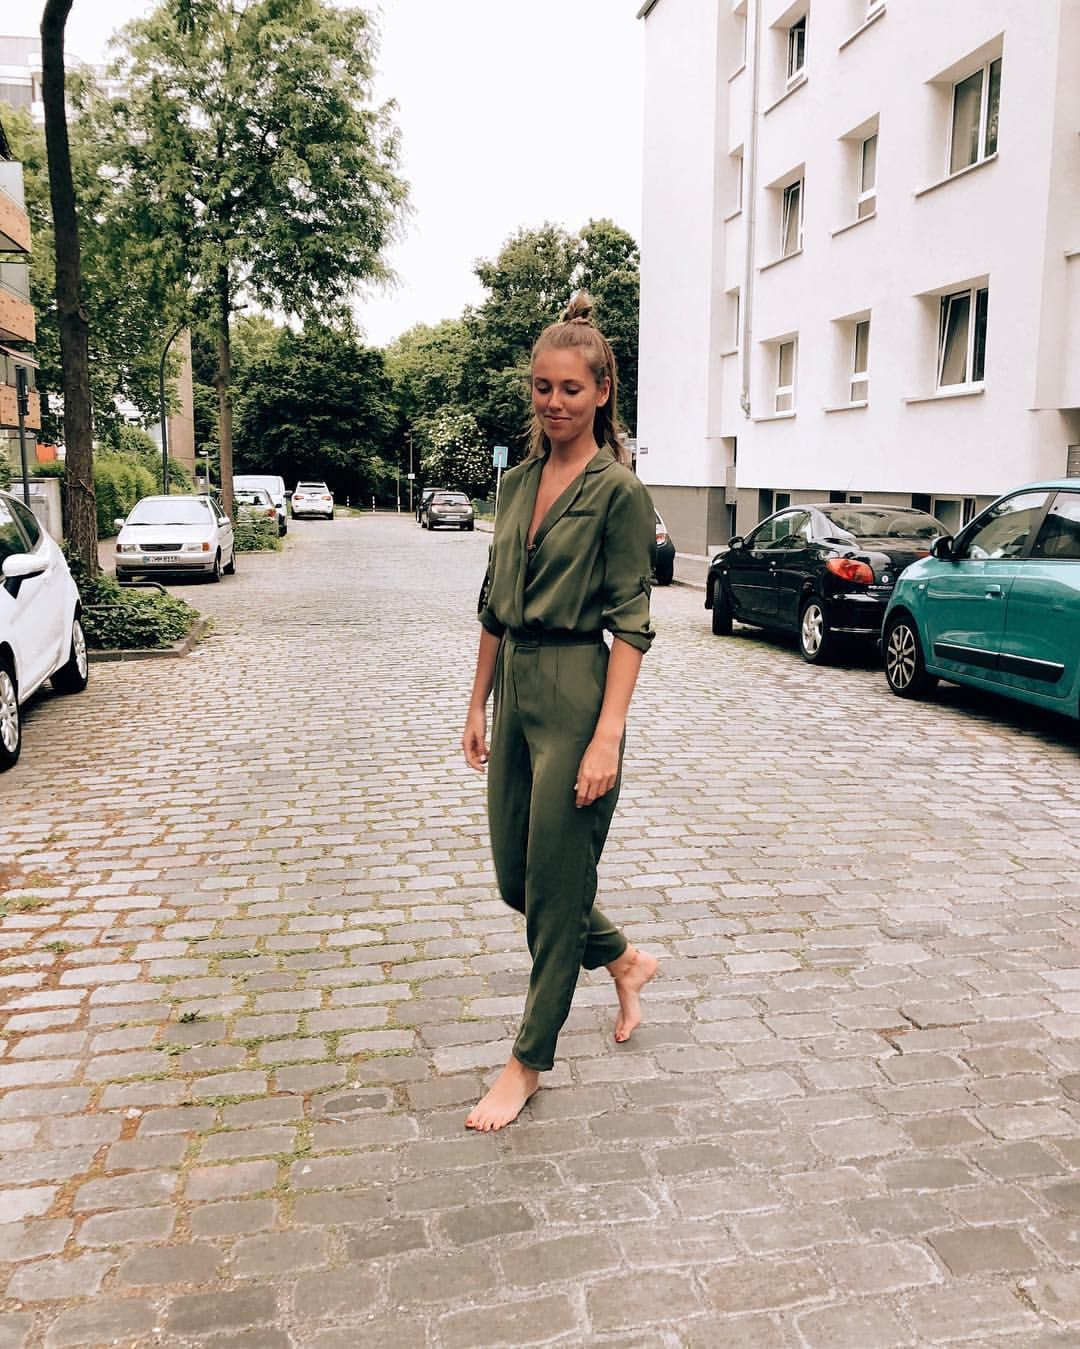 Barefoot In City #barefoot #city #tanned #happy #